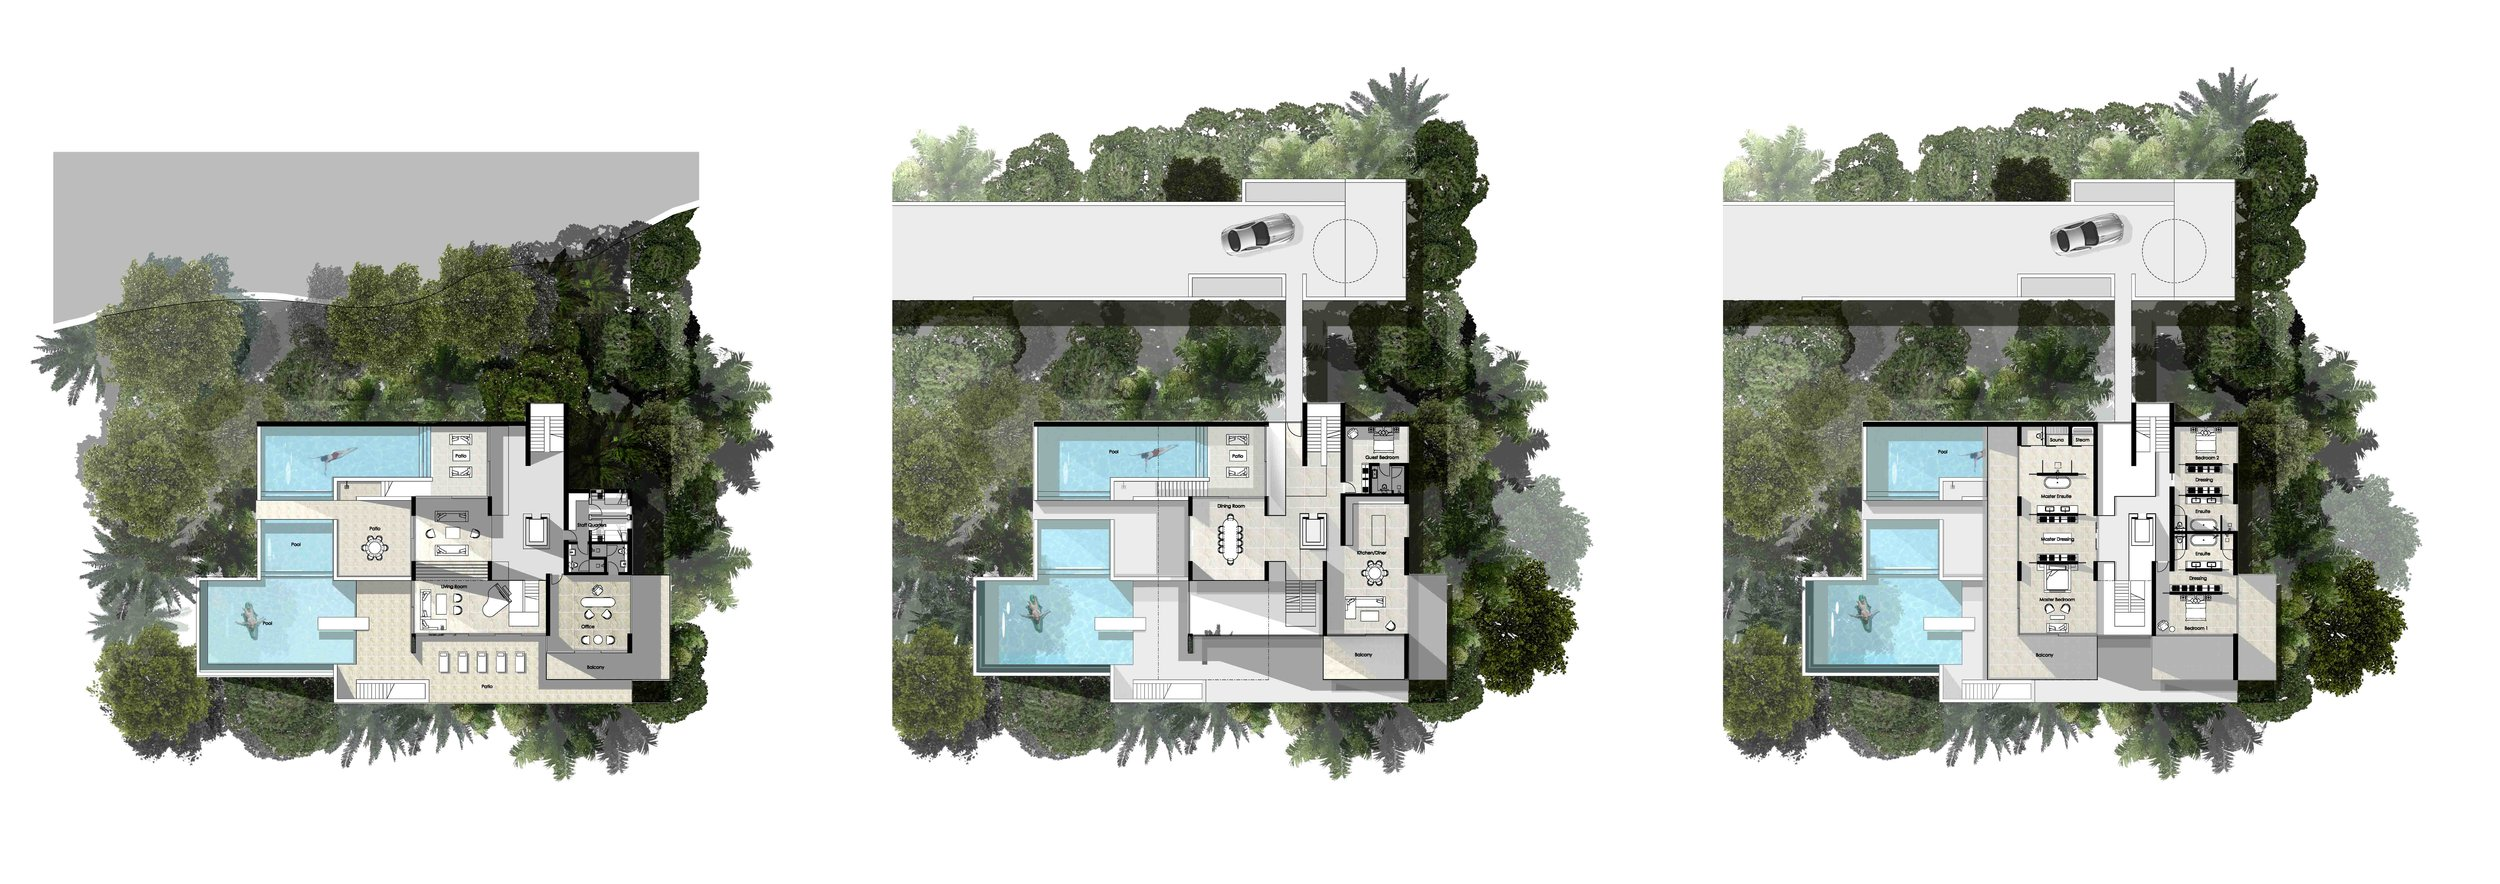 Floor plans for the second villa concept - includes a trio of swimming pools, gym, spa, dining room, kitchen, staff quarters and enormous bedrooms with en-  suites and storage and wardrobe space